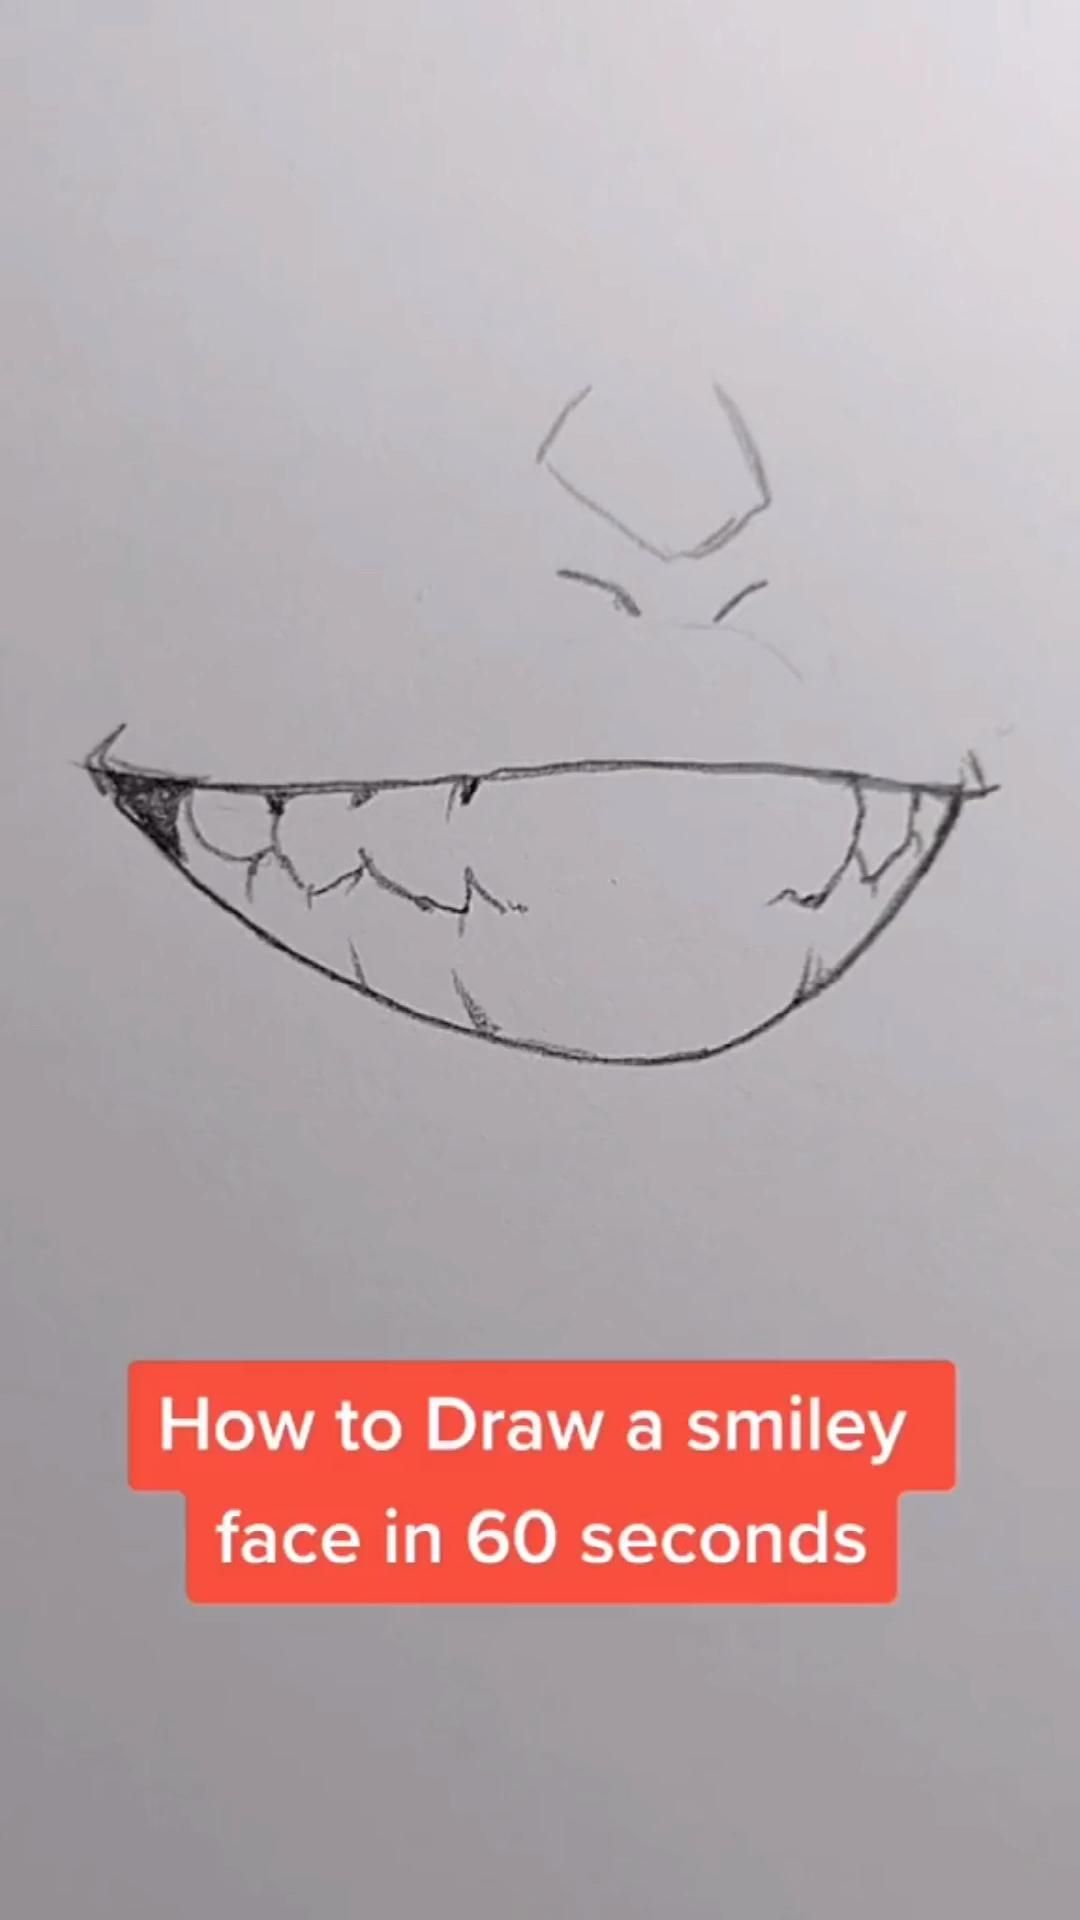 Anime Smiley mouth drawing